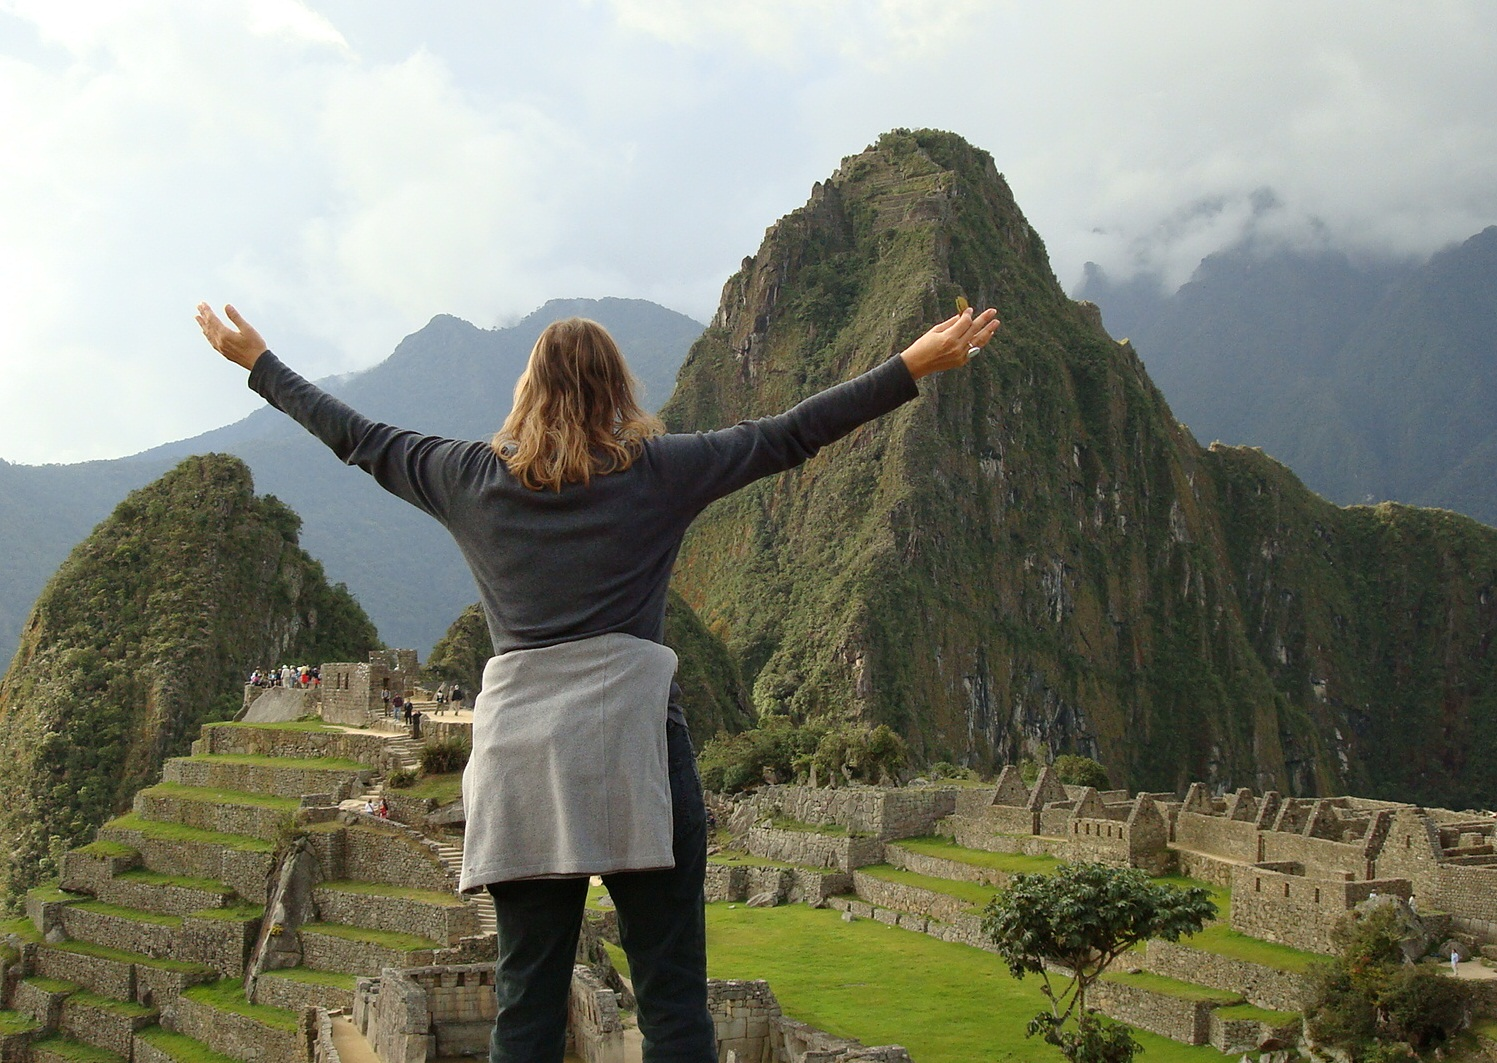 A Day in the Life of a Healer – Machu Picchu, Peru